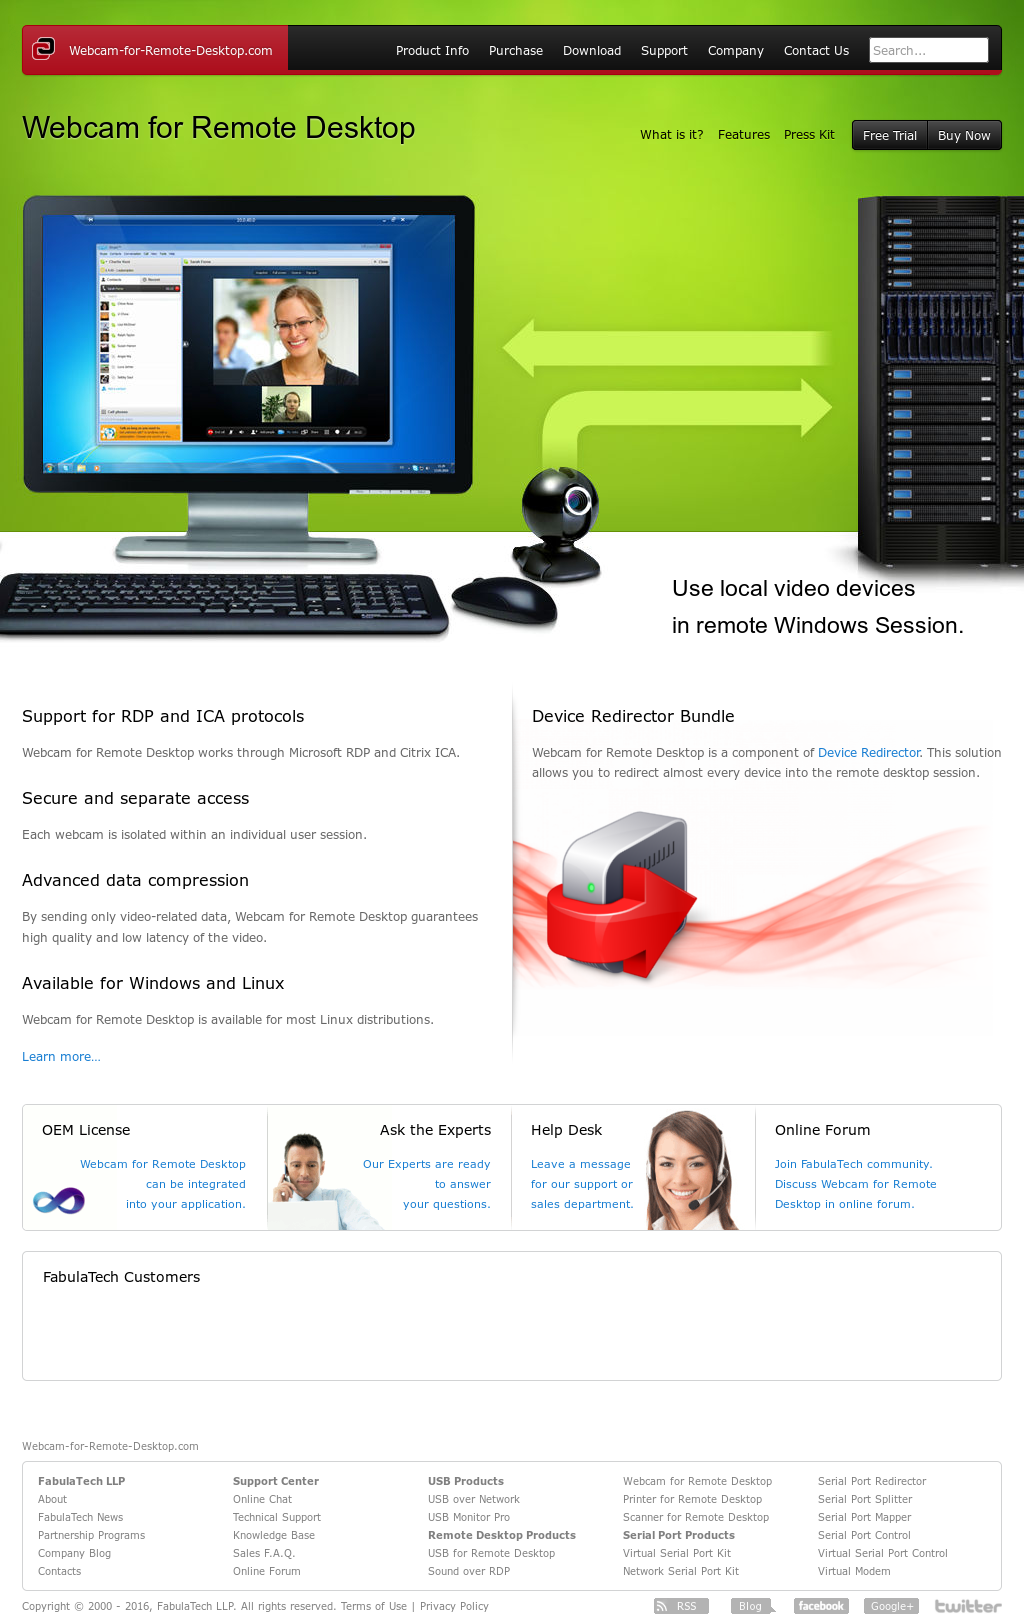 Webcam For Remote Desktop Competitors, Revenue and Employees